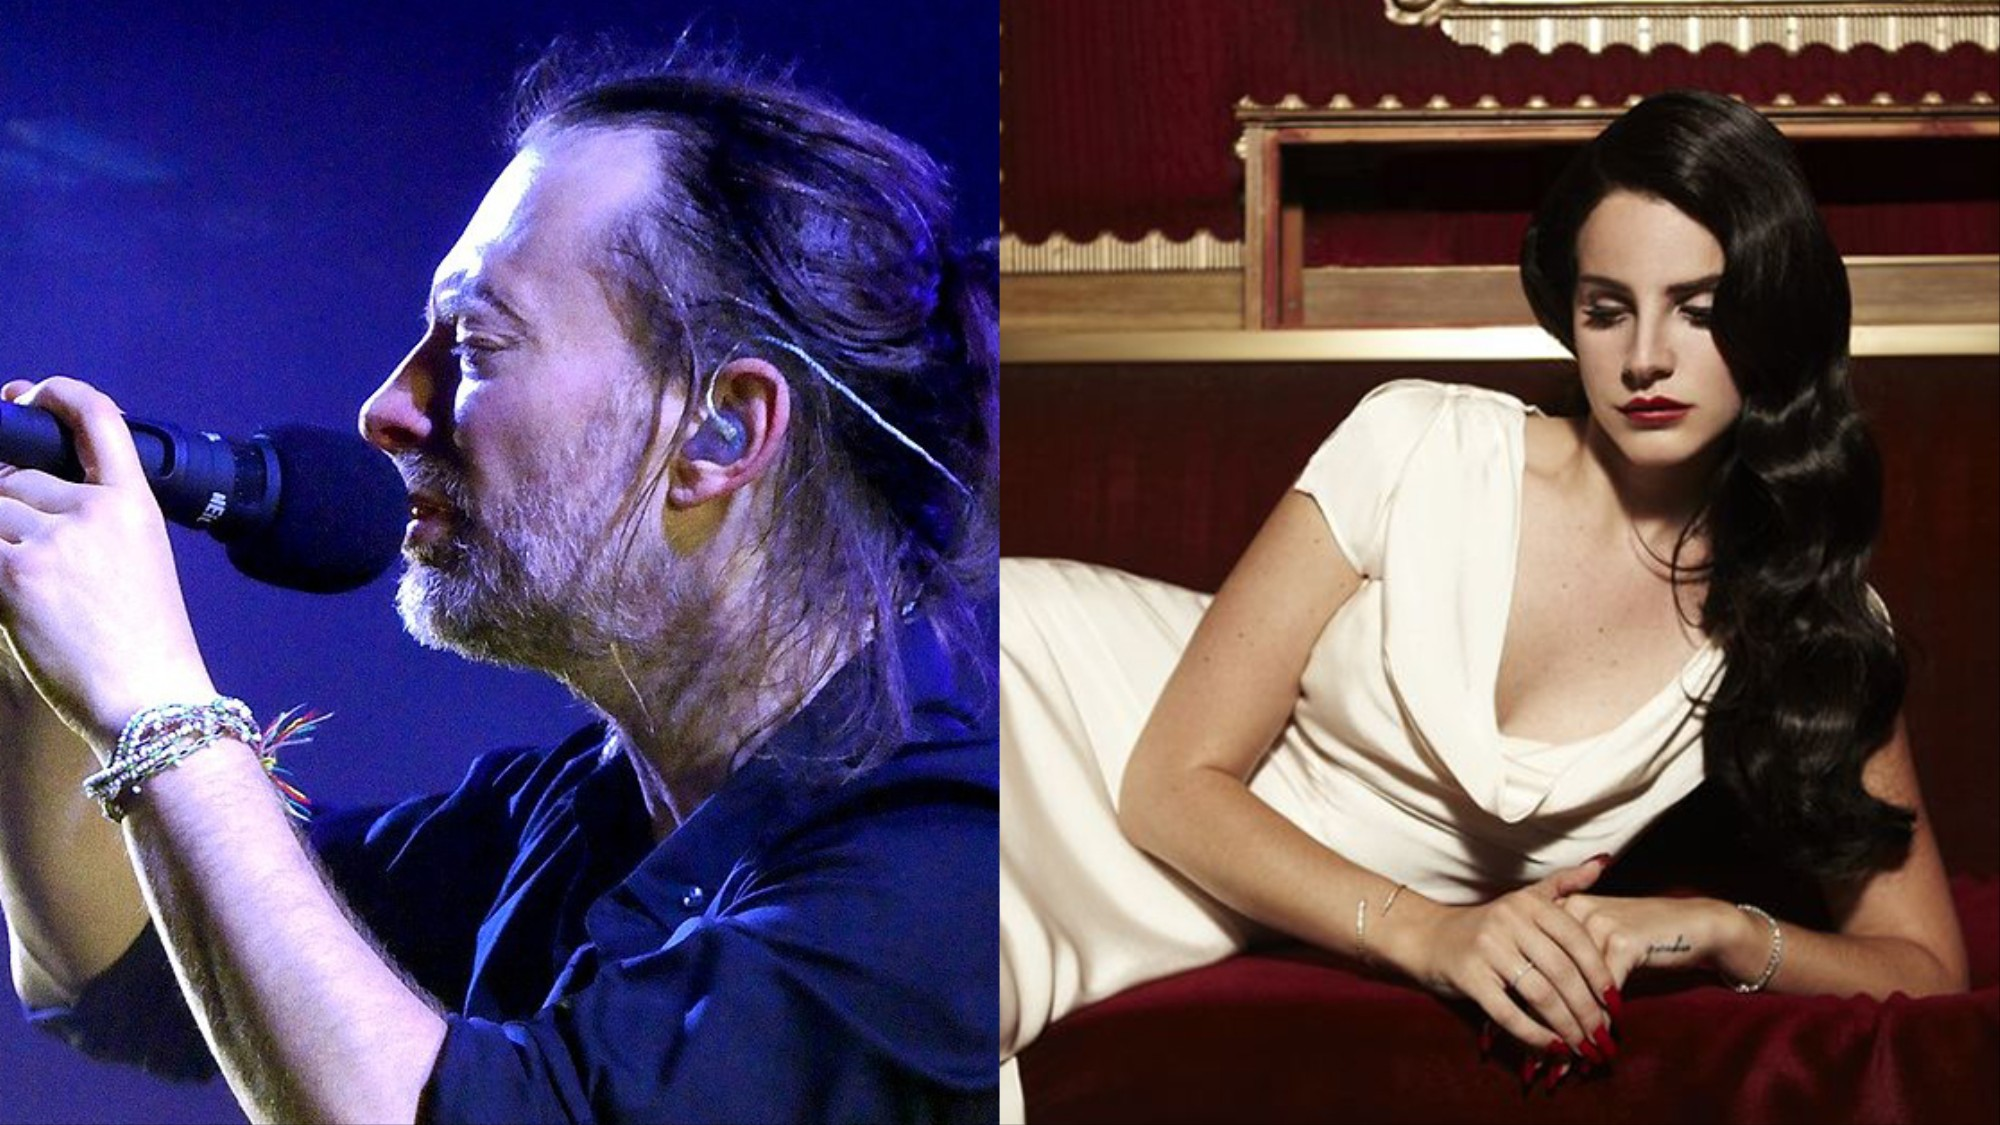 Who Is Better: Radiohead or Lana Del Rey? - VICE